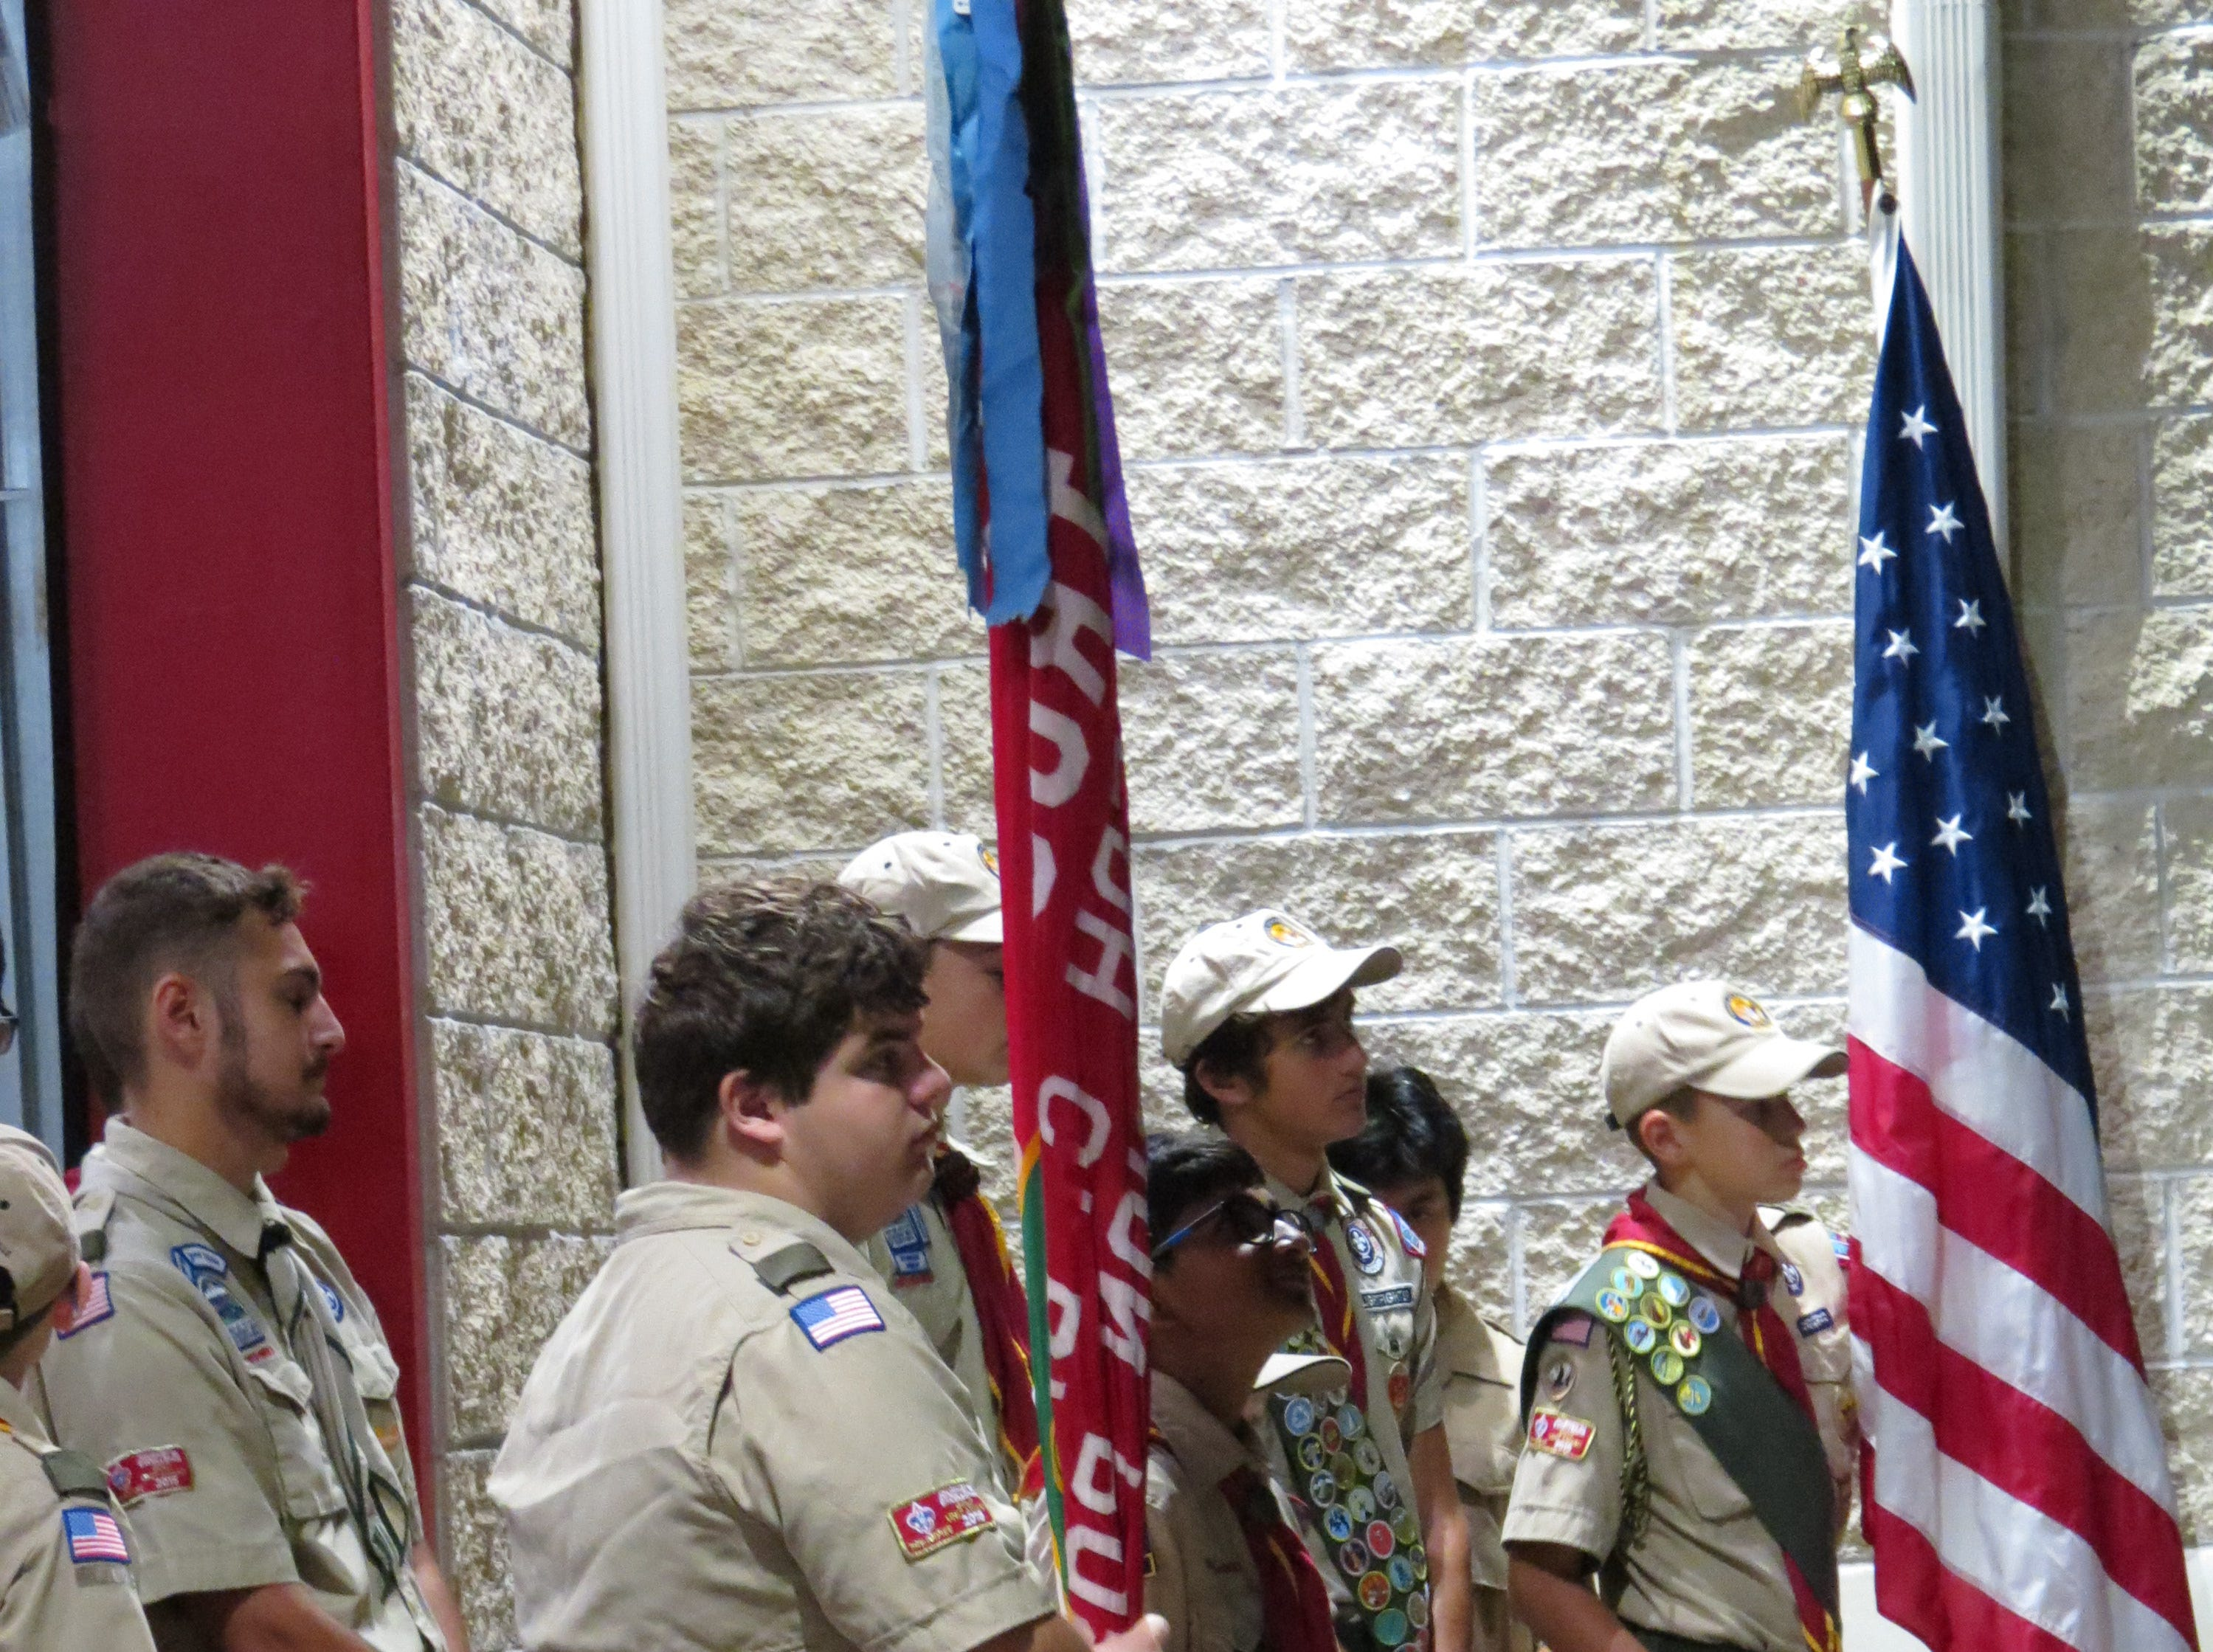 Boy Scouts from Montvale participated in the borough's 9/11 ceremony on Tuesday, Sept. 11, 2018.